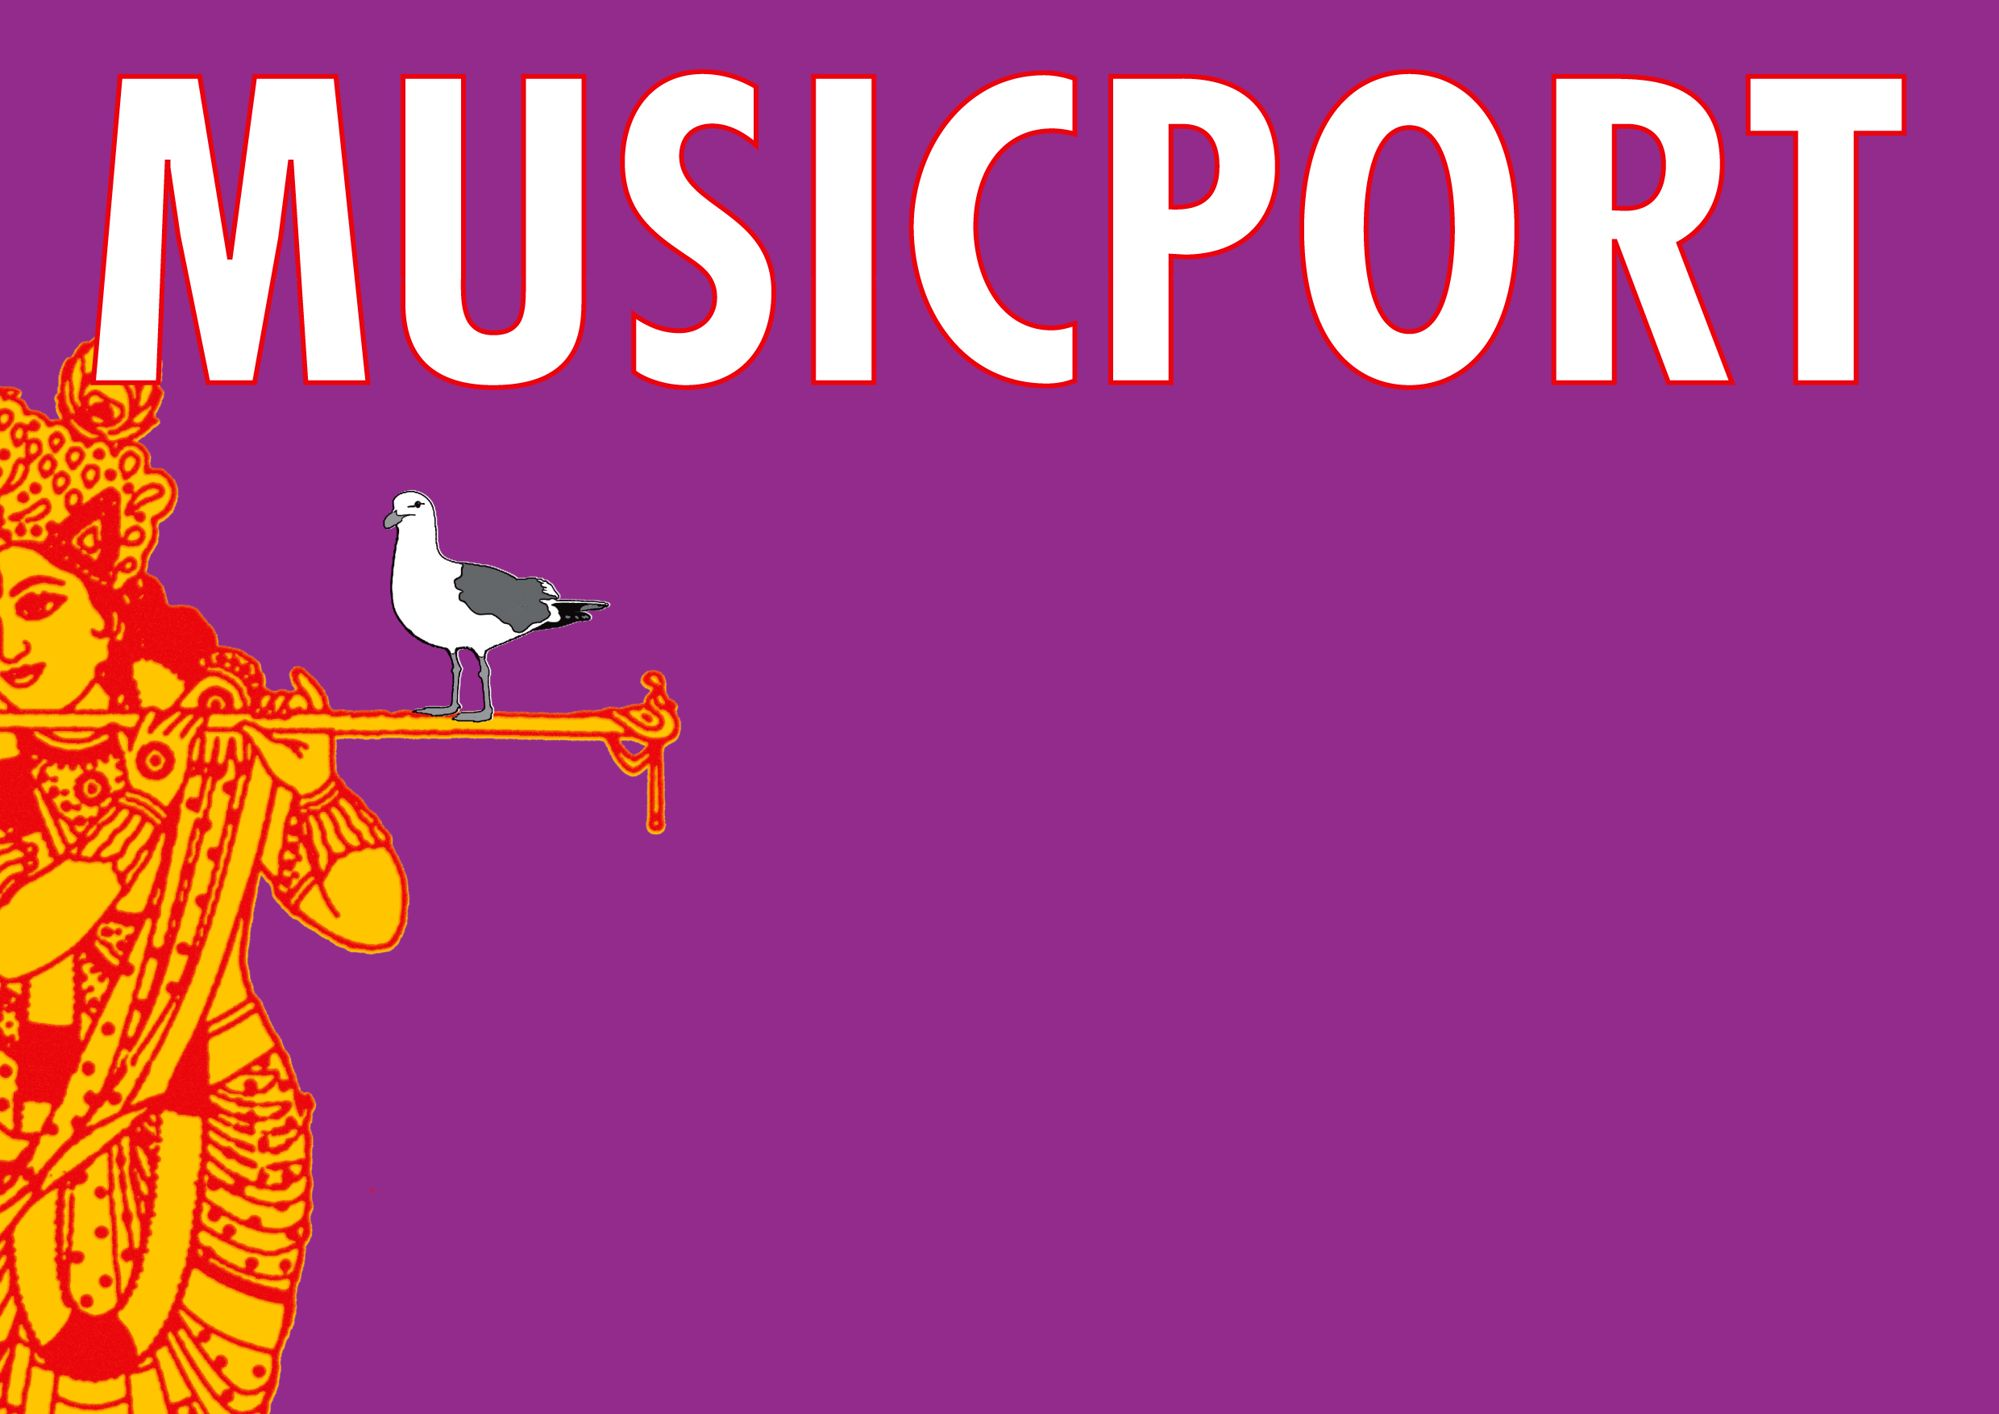 Win Tickets to Musicport Festival in Whitby!